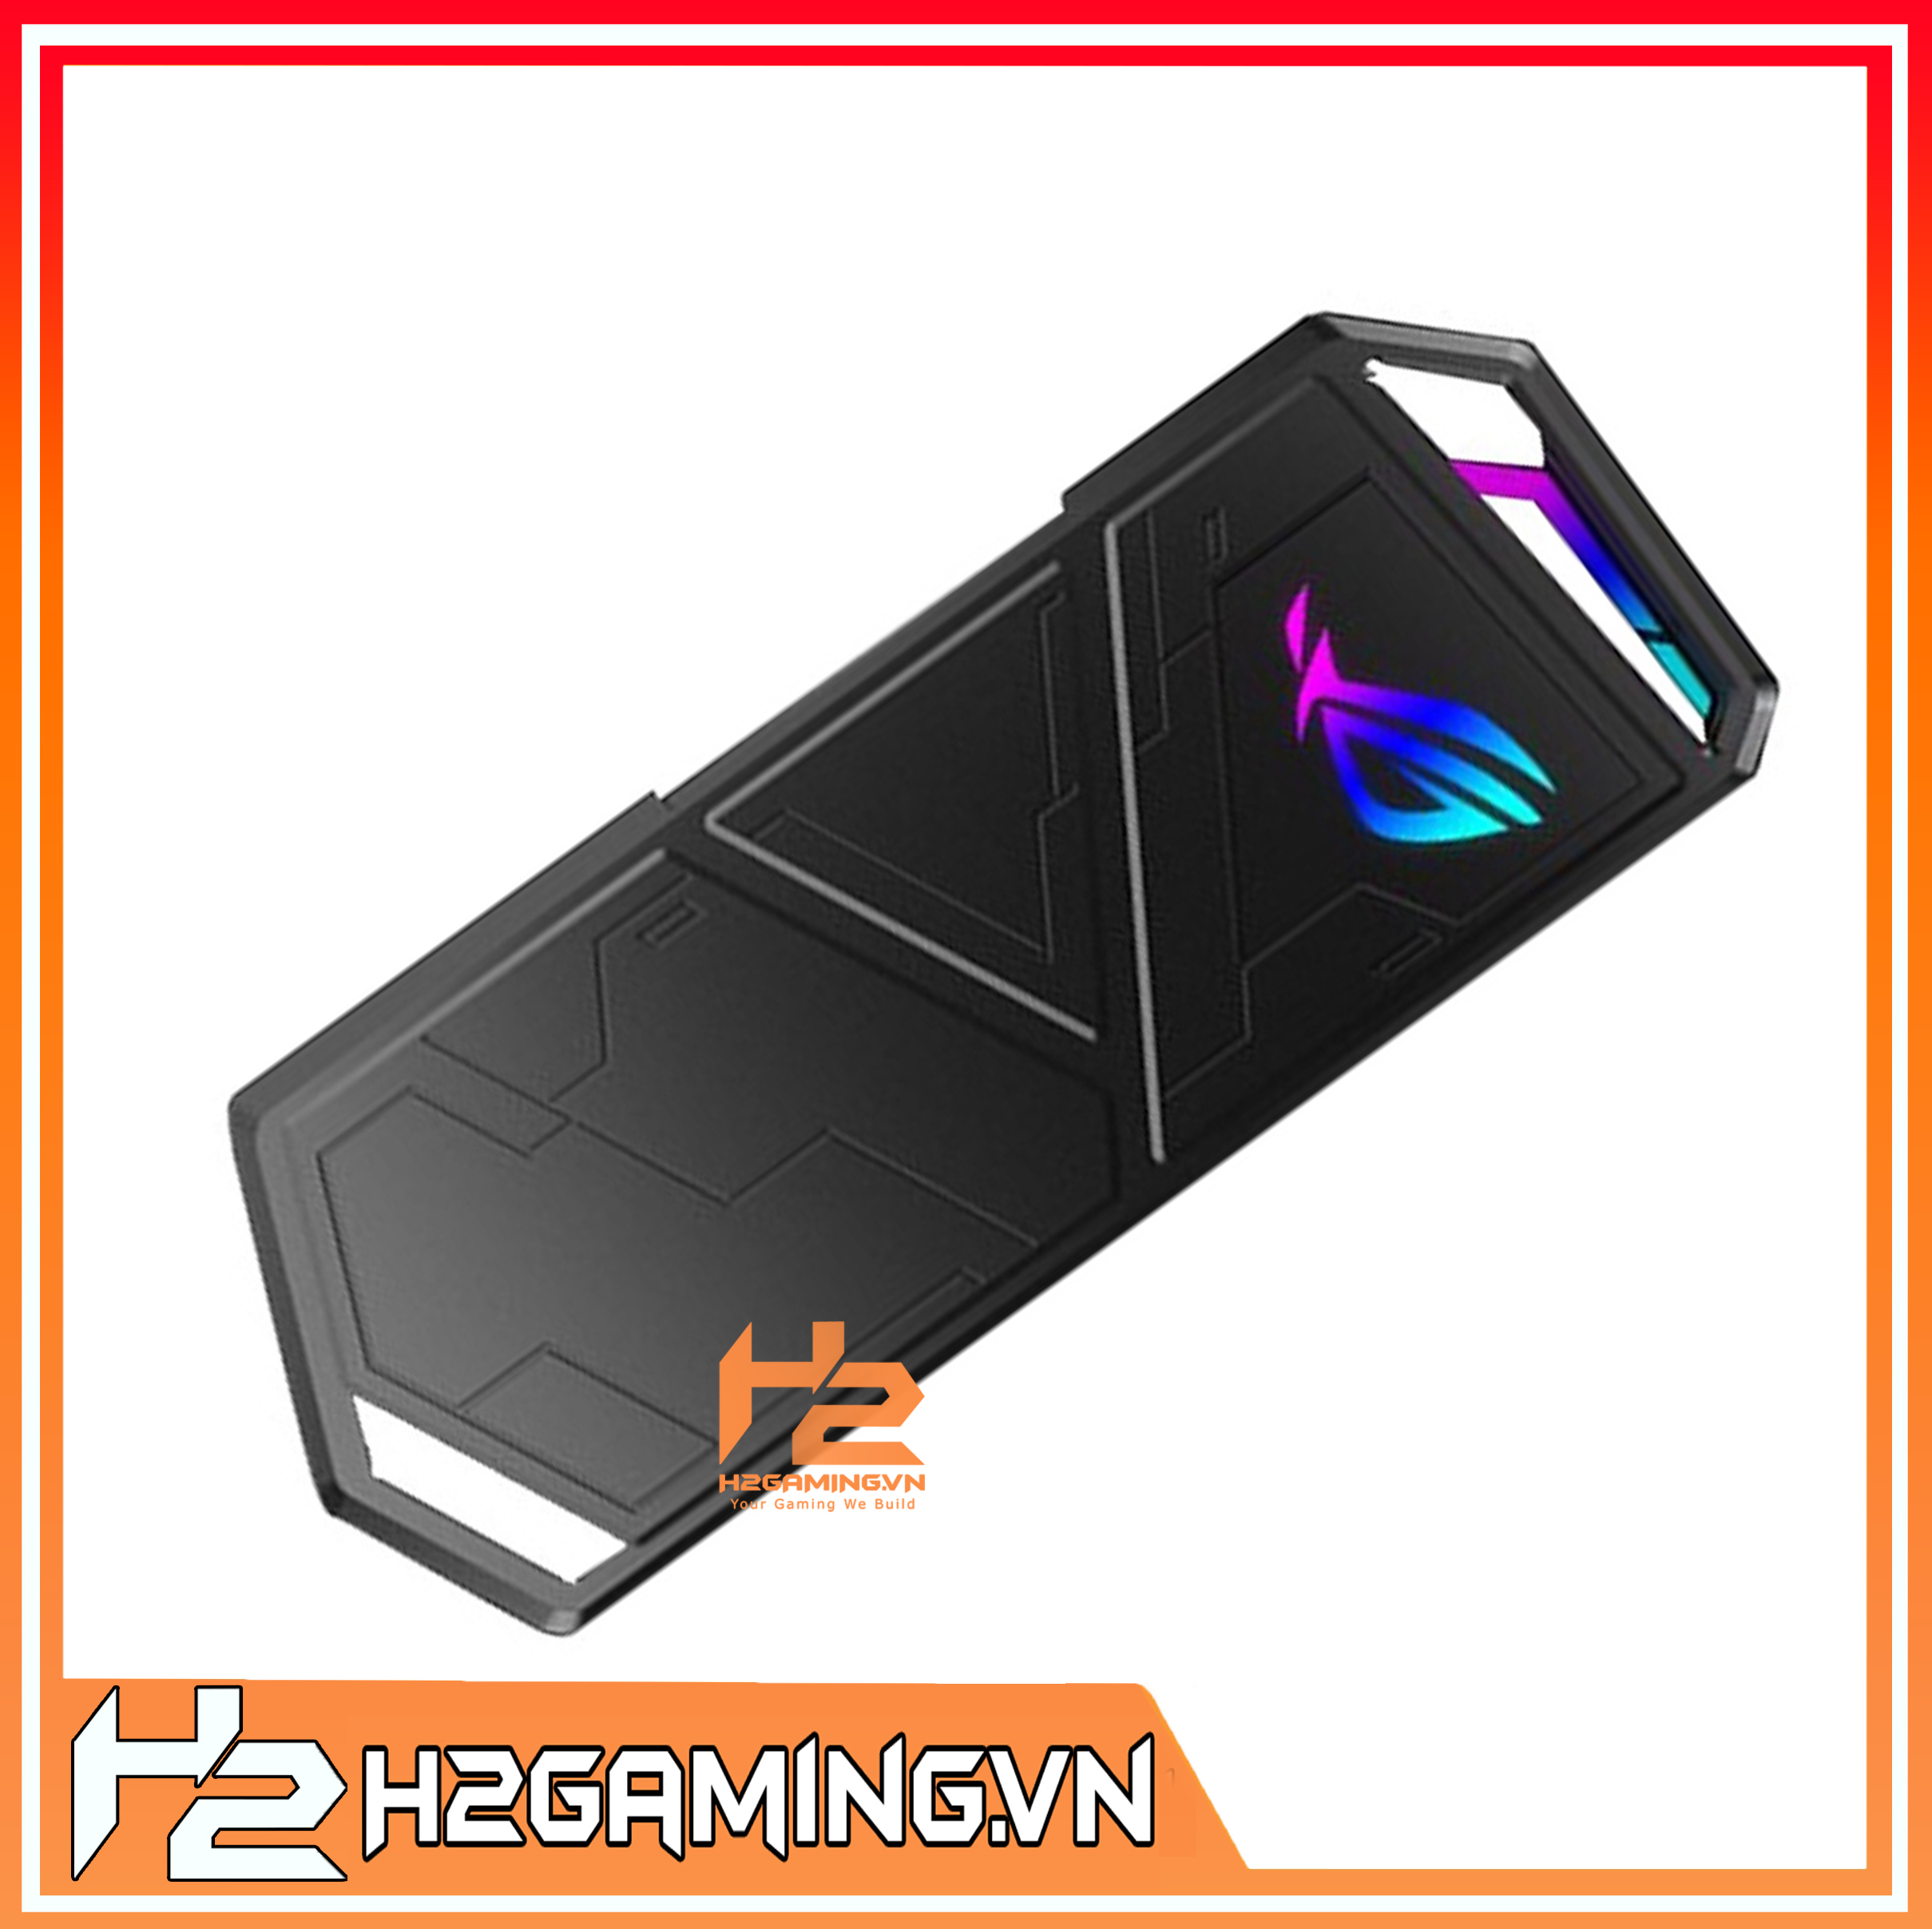 BOX_SSD_ROG_STRIX_ARION_ESD-S1C